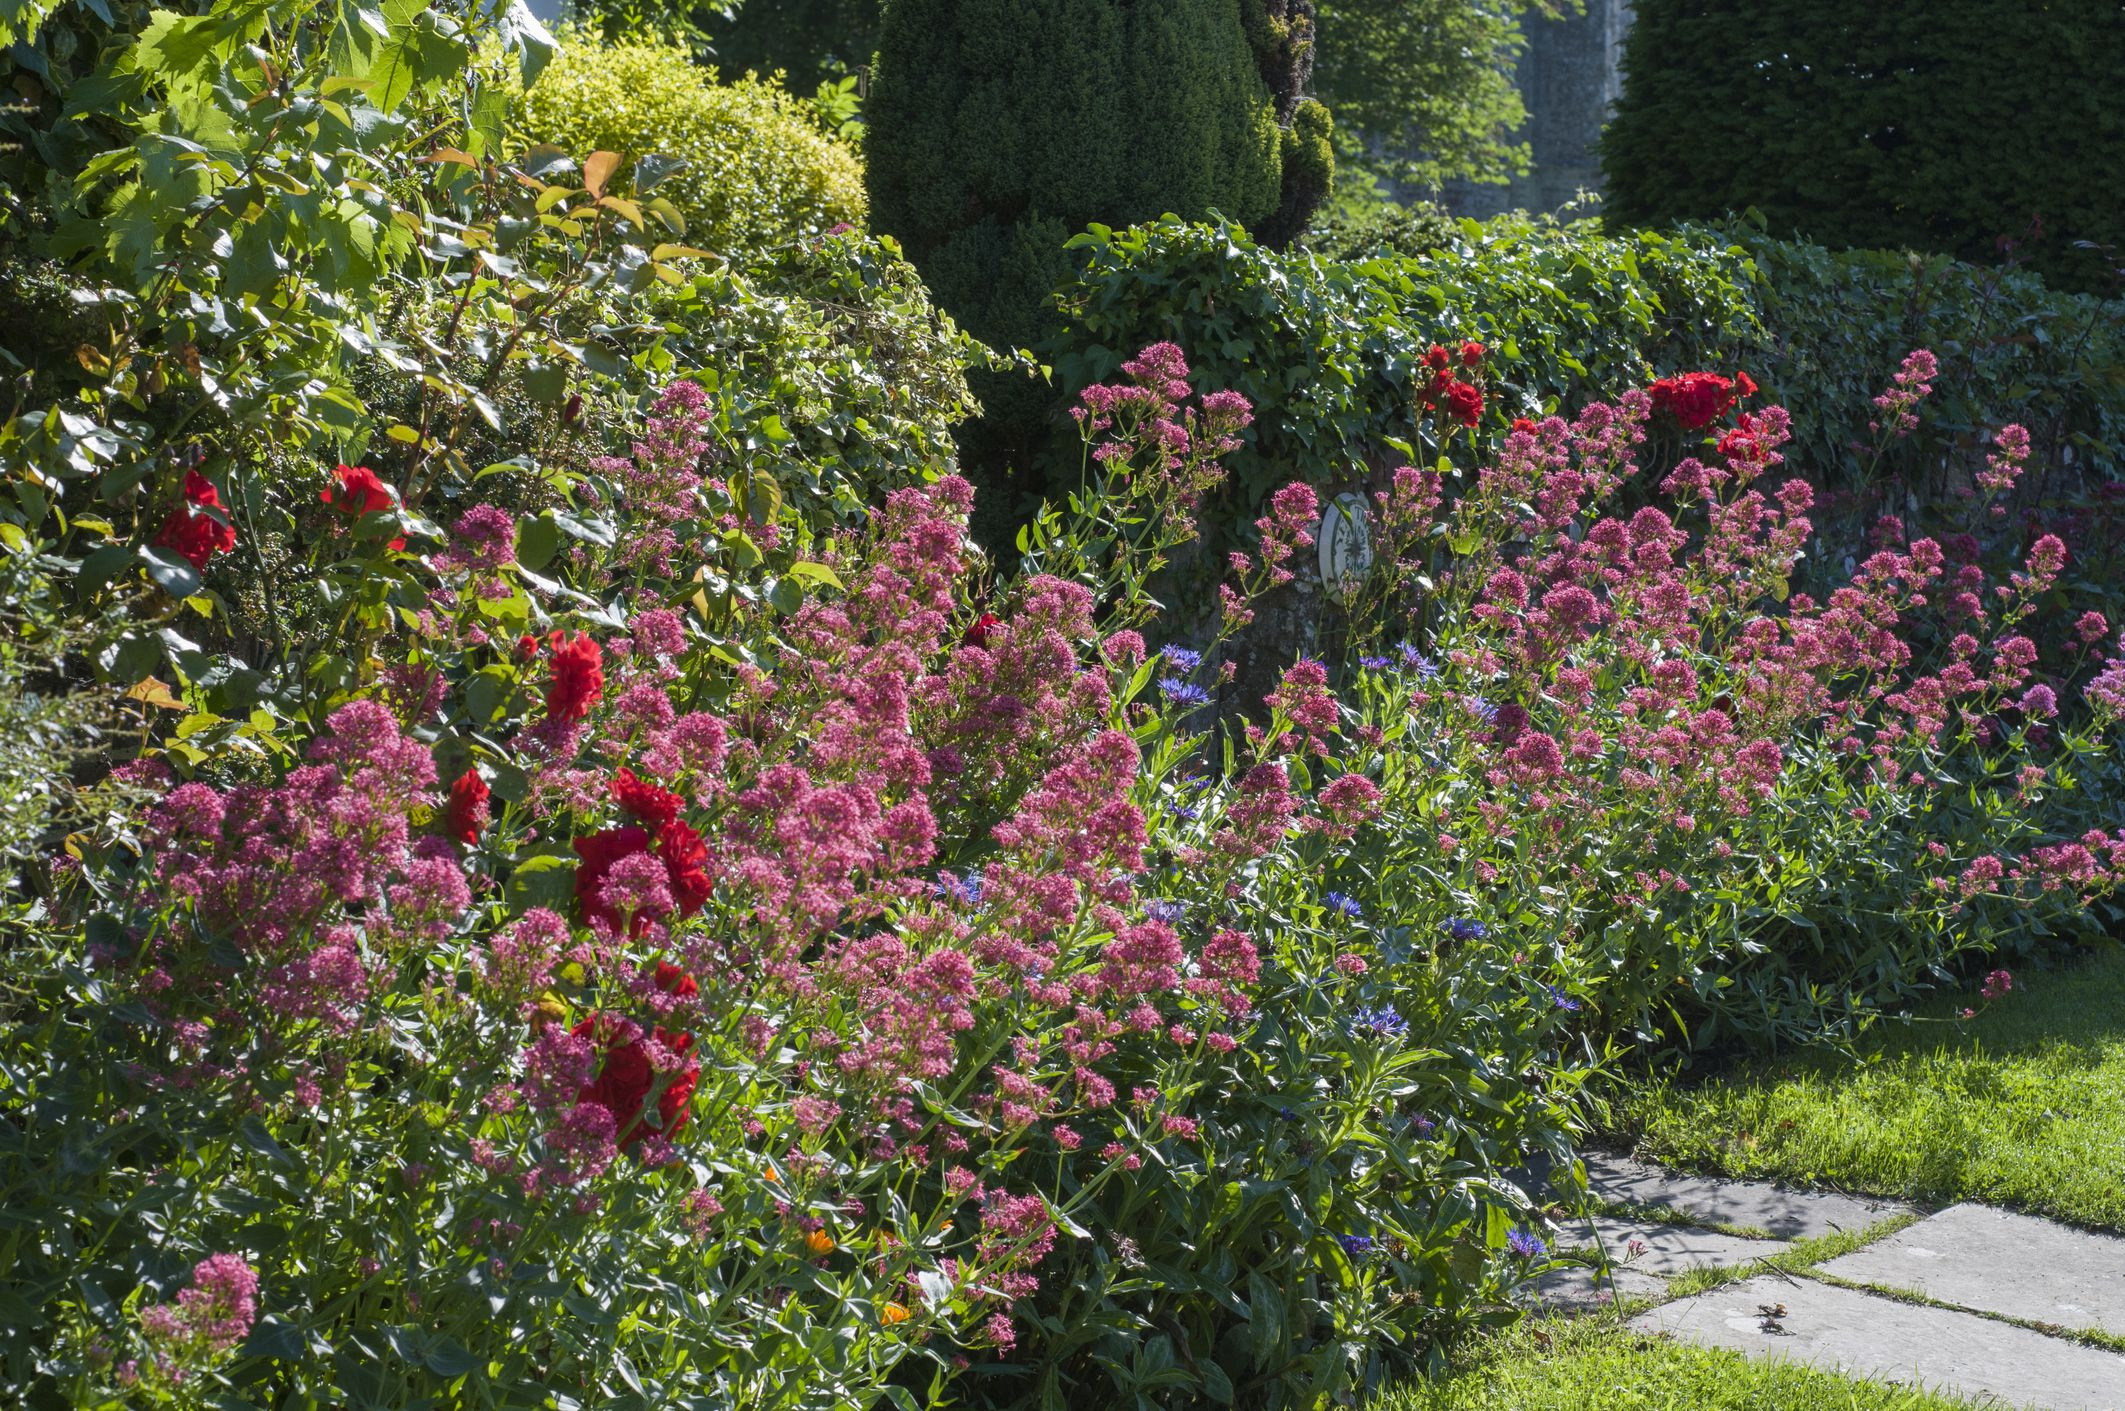 a patch of Centranthus (Red Valerian)